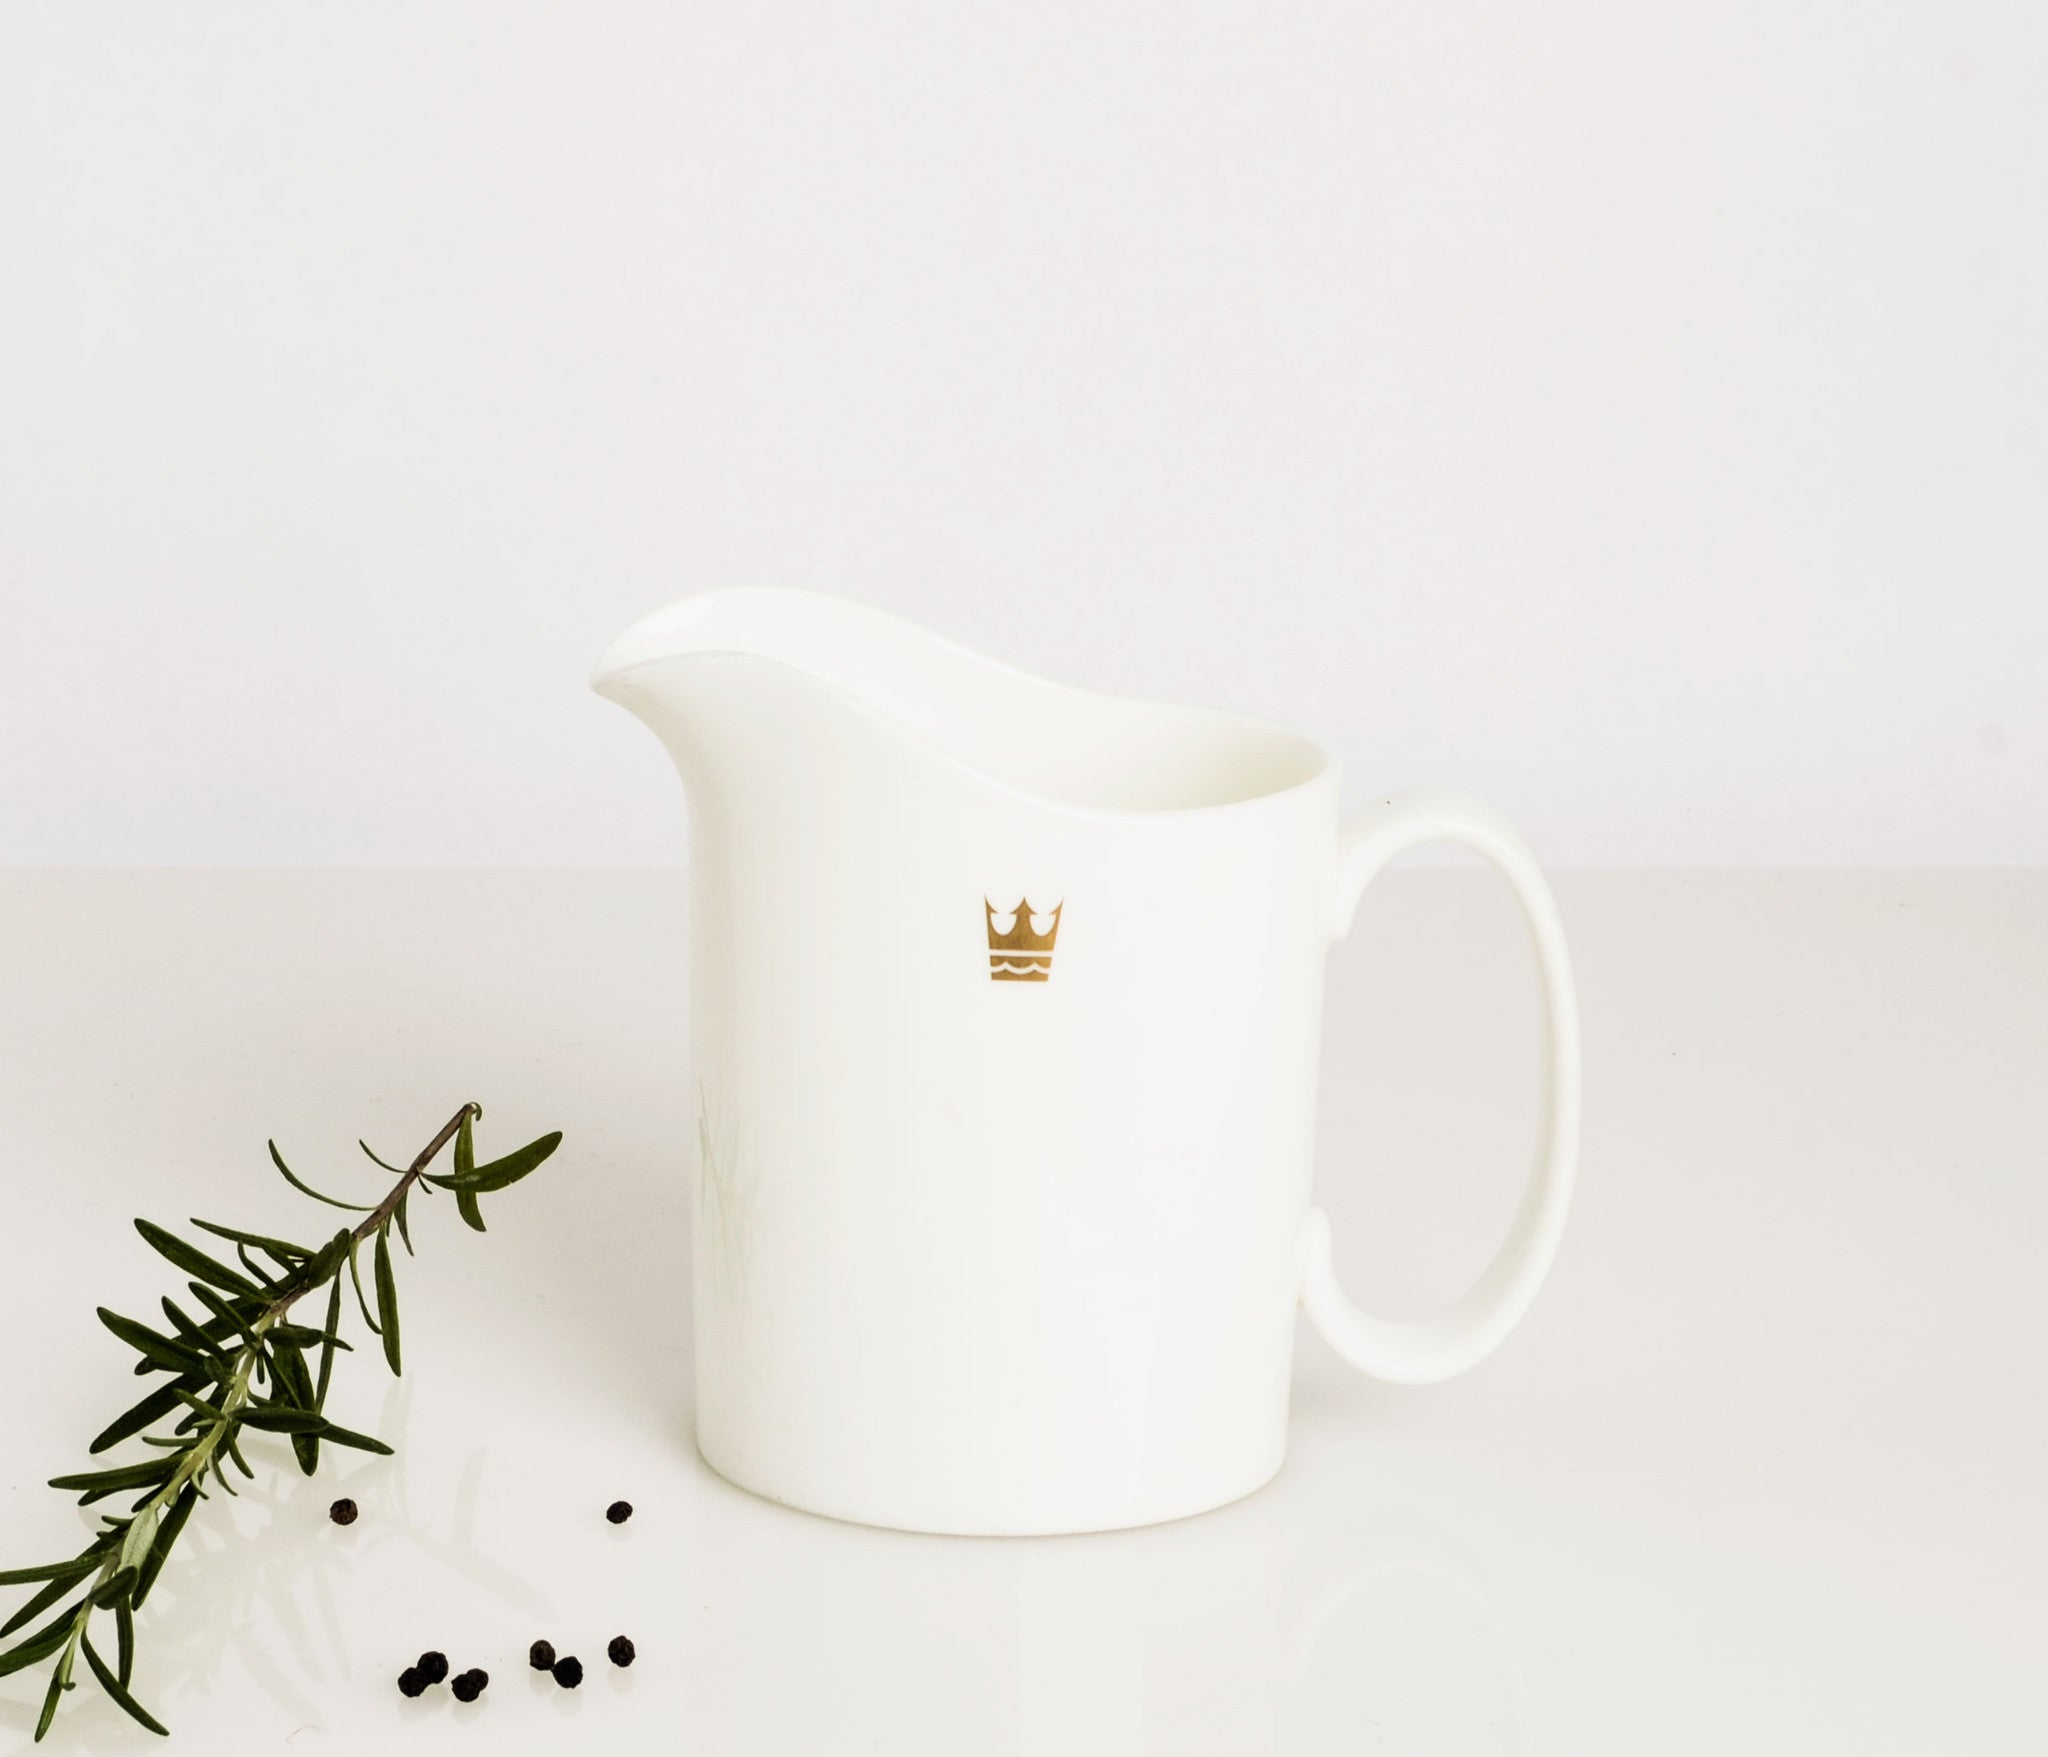 Royal Doulton Bone China Pitcher in Royal Cruise Line Pattern